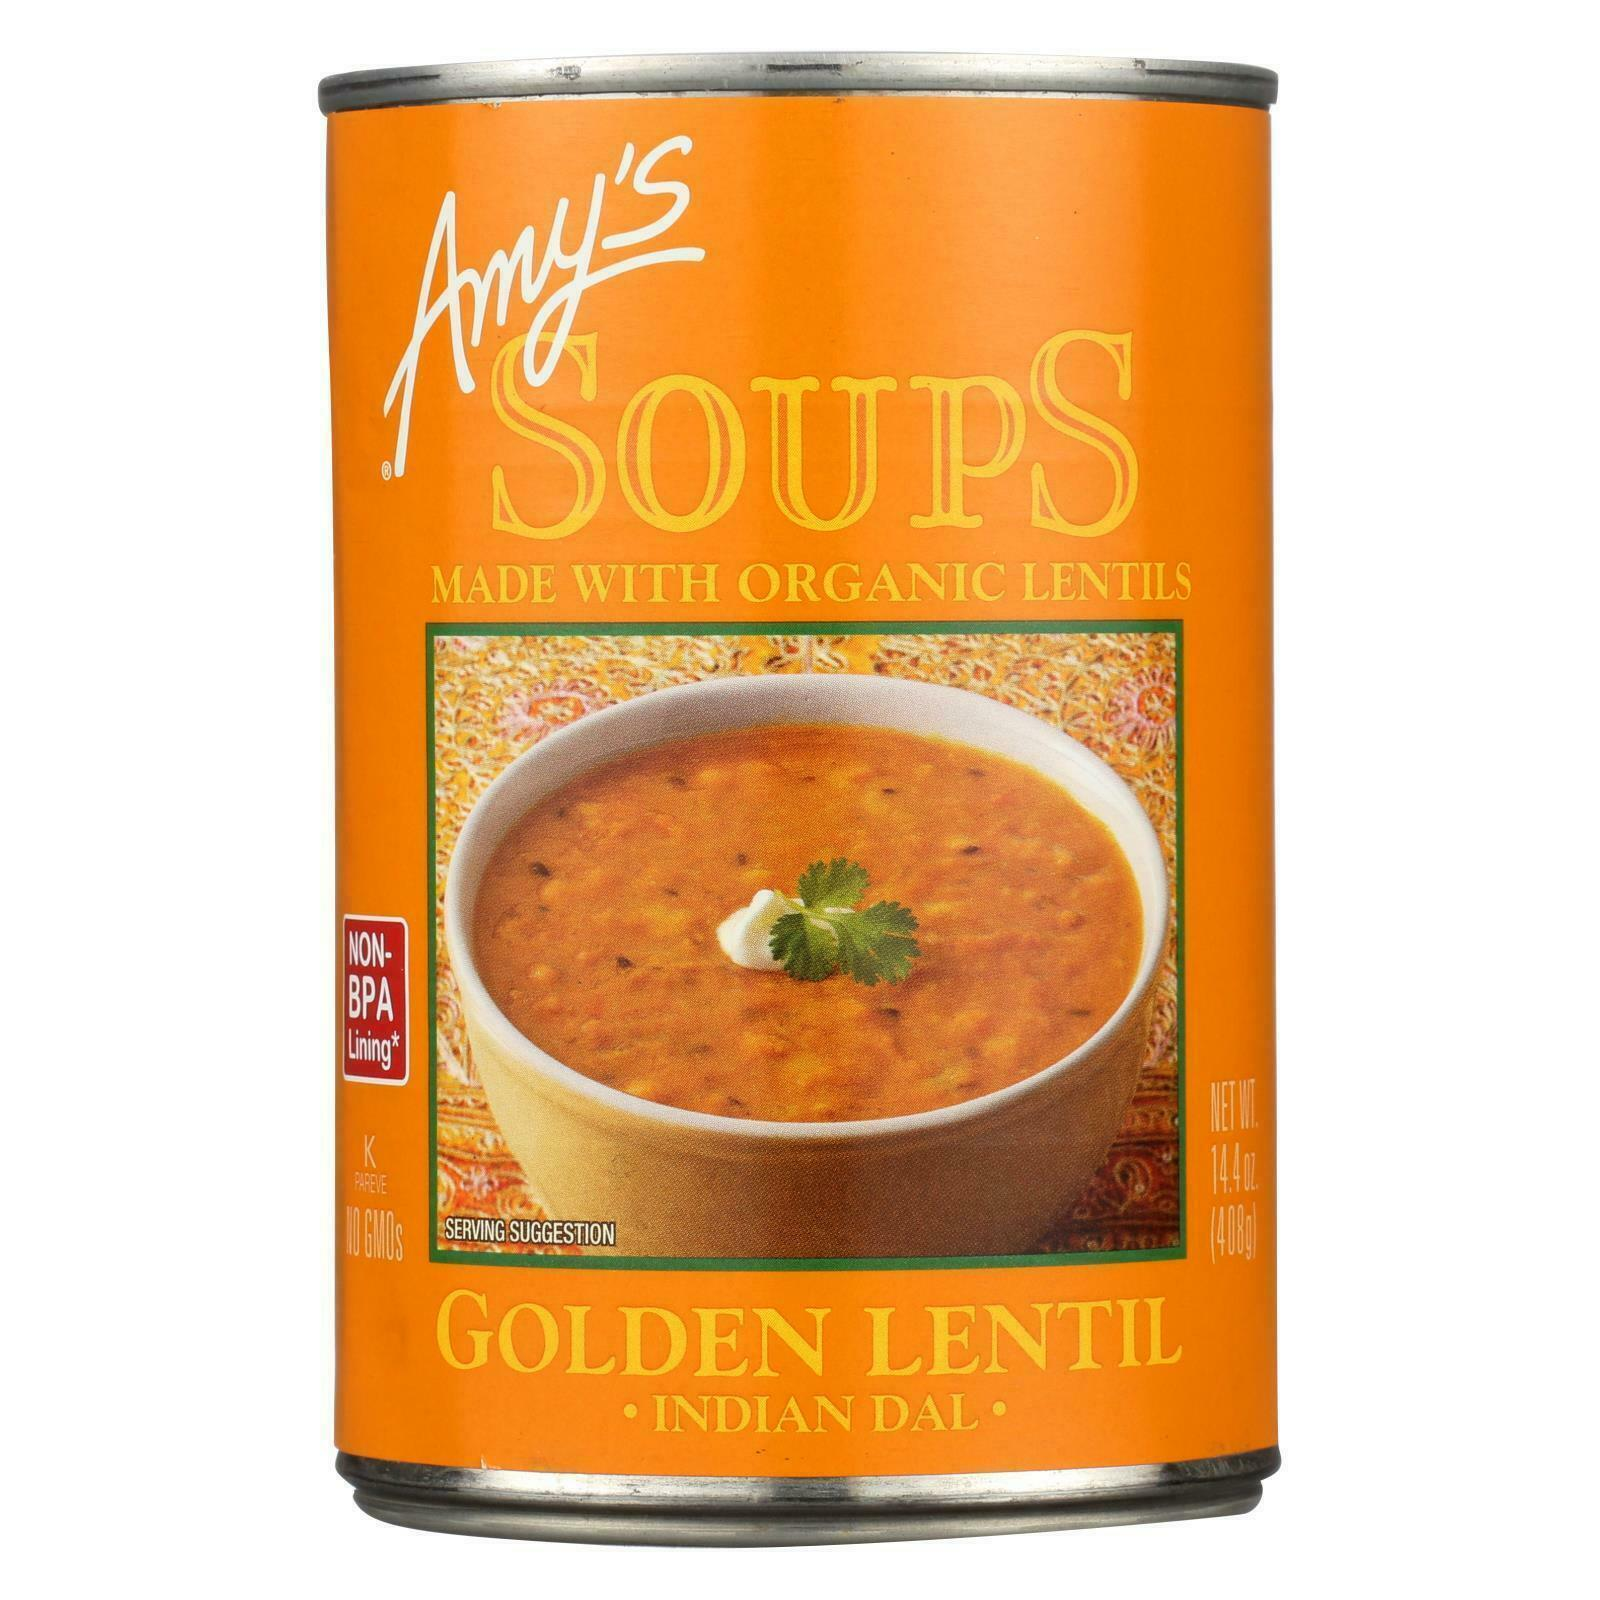 Primary image for Amy's Organic Golden Lentil Soup 14.4 oz ( Pack of 2 )